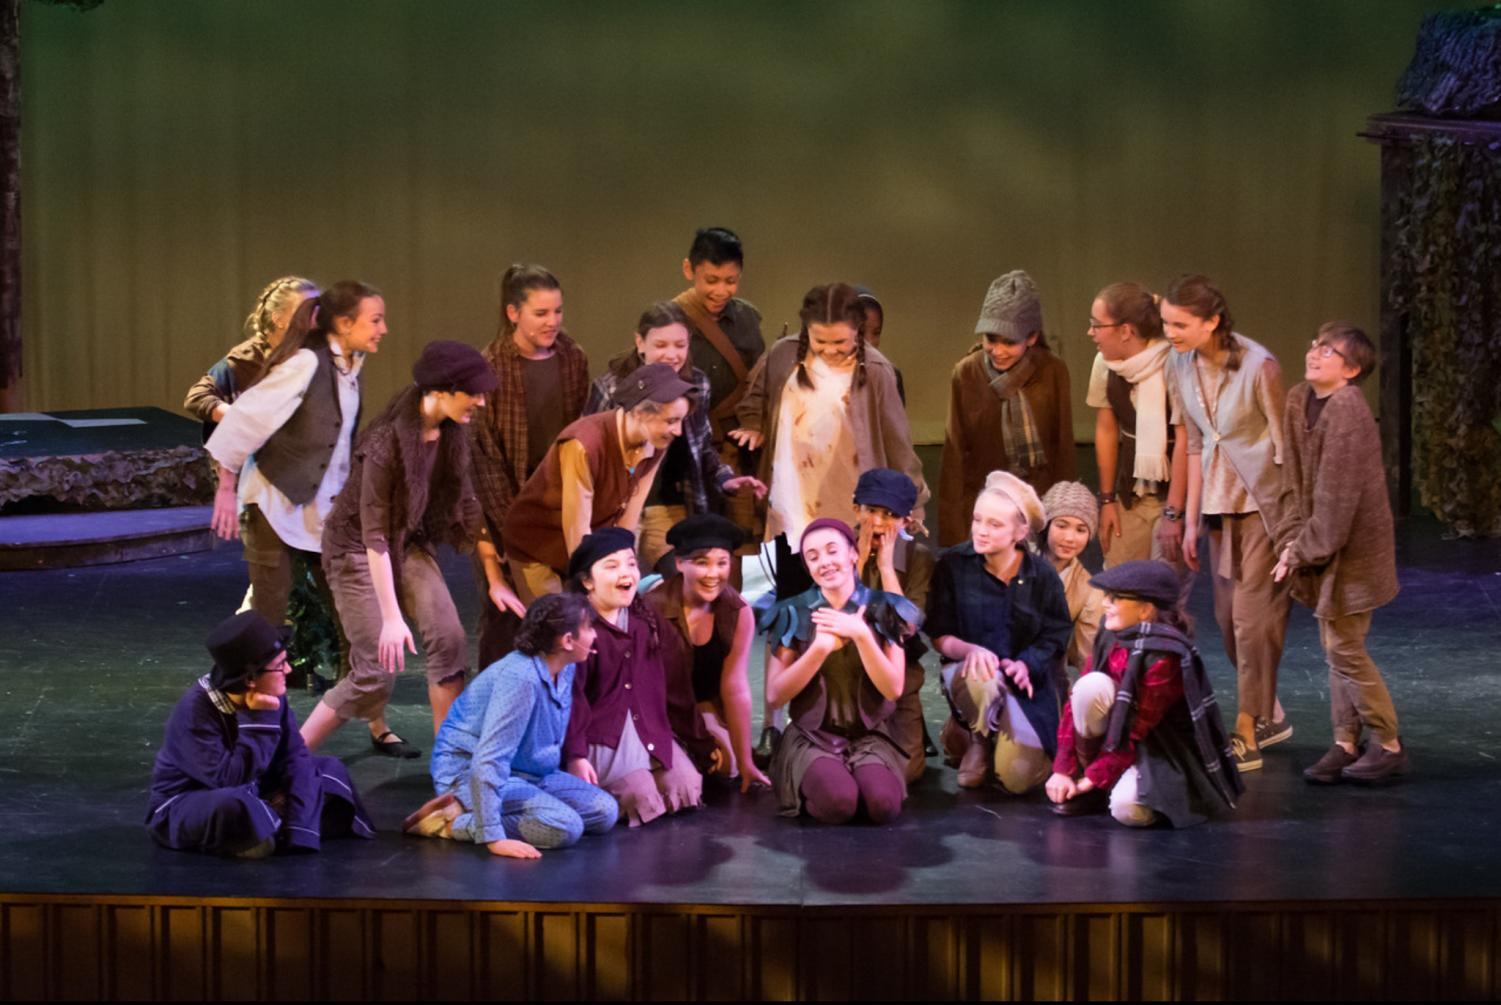 Courtesy of Drum Drum Photography, who took this photo during the production of Peter Pan.